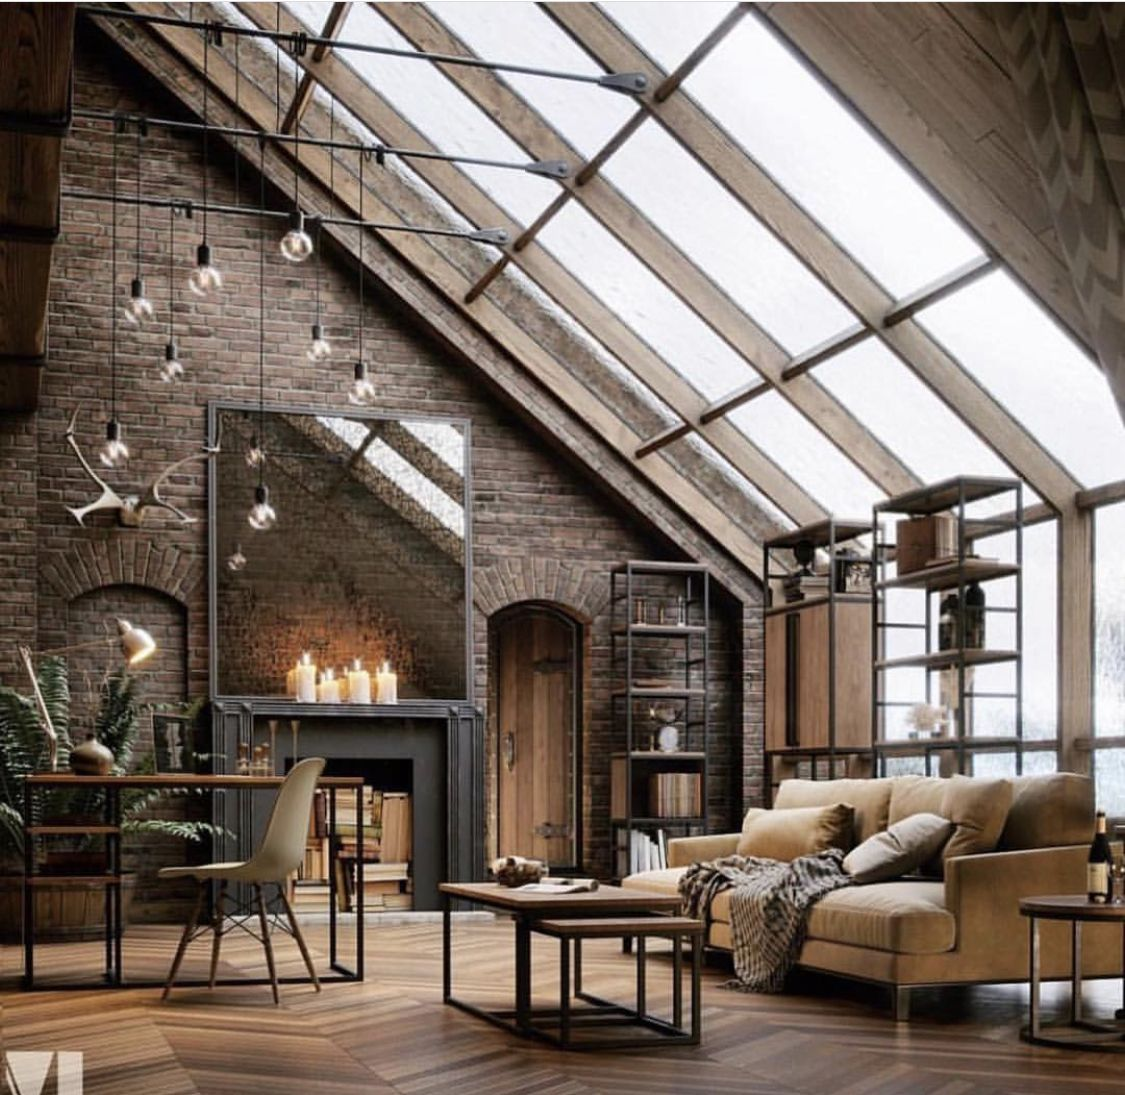 23 Elegant Living Room With Exposed Brick Wall: Fireplaces, Mirror Placement, Exposed Brick, Door Arches